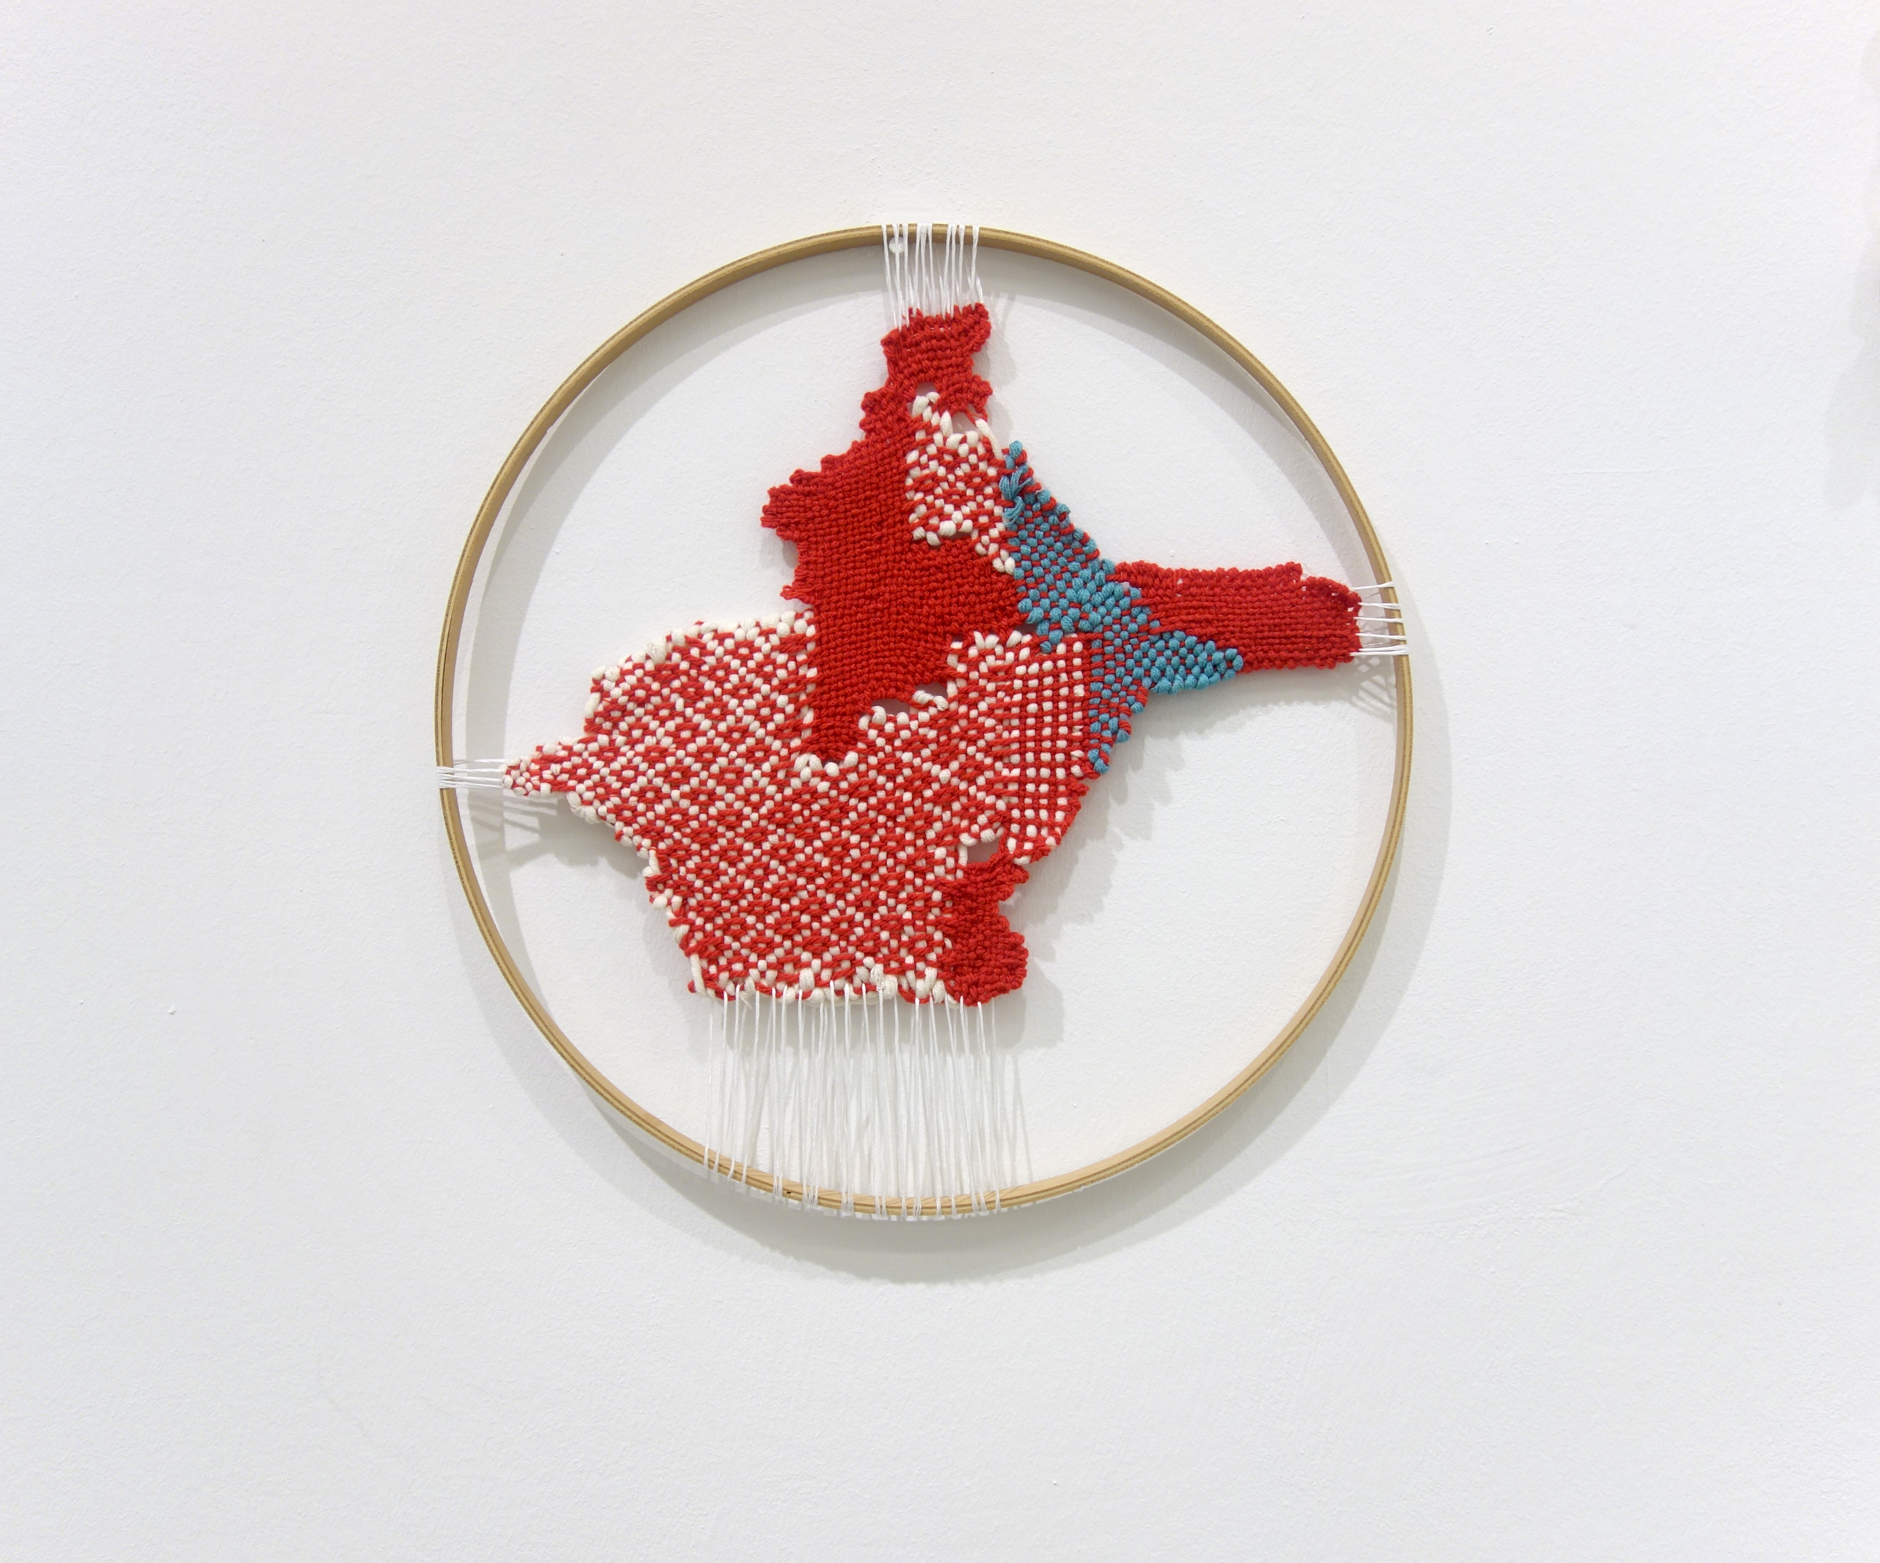 Izziyana Suhaimi, Cross Section of Bone II, 2015, Cotton thread and wool; woven on wooden hoop, Ø36 cm.jpg